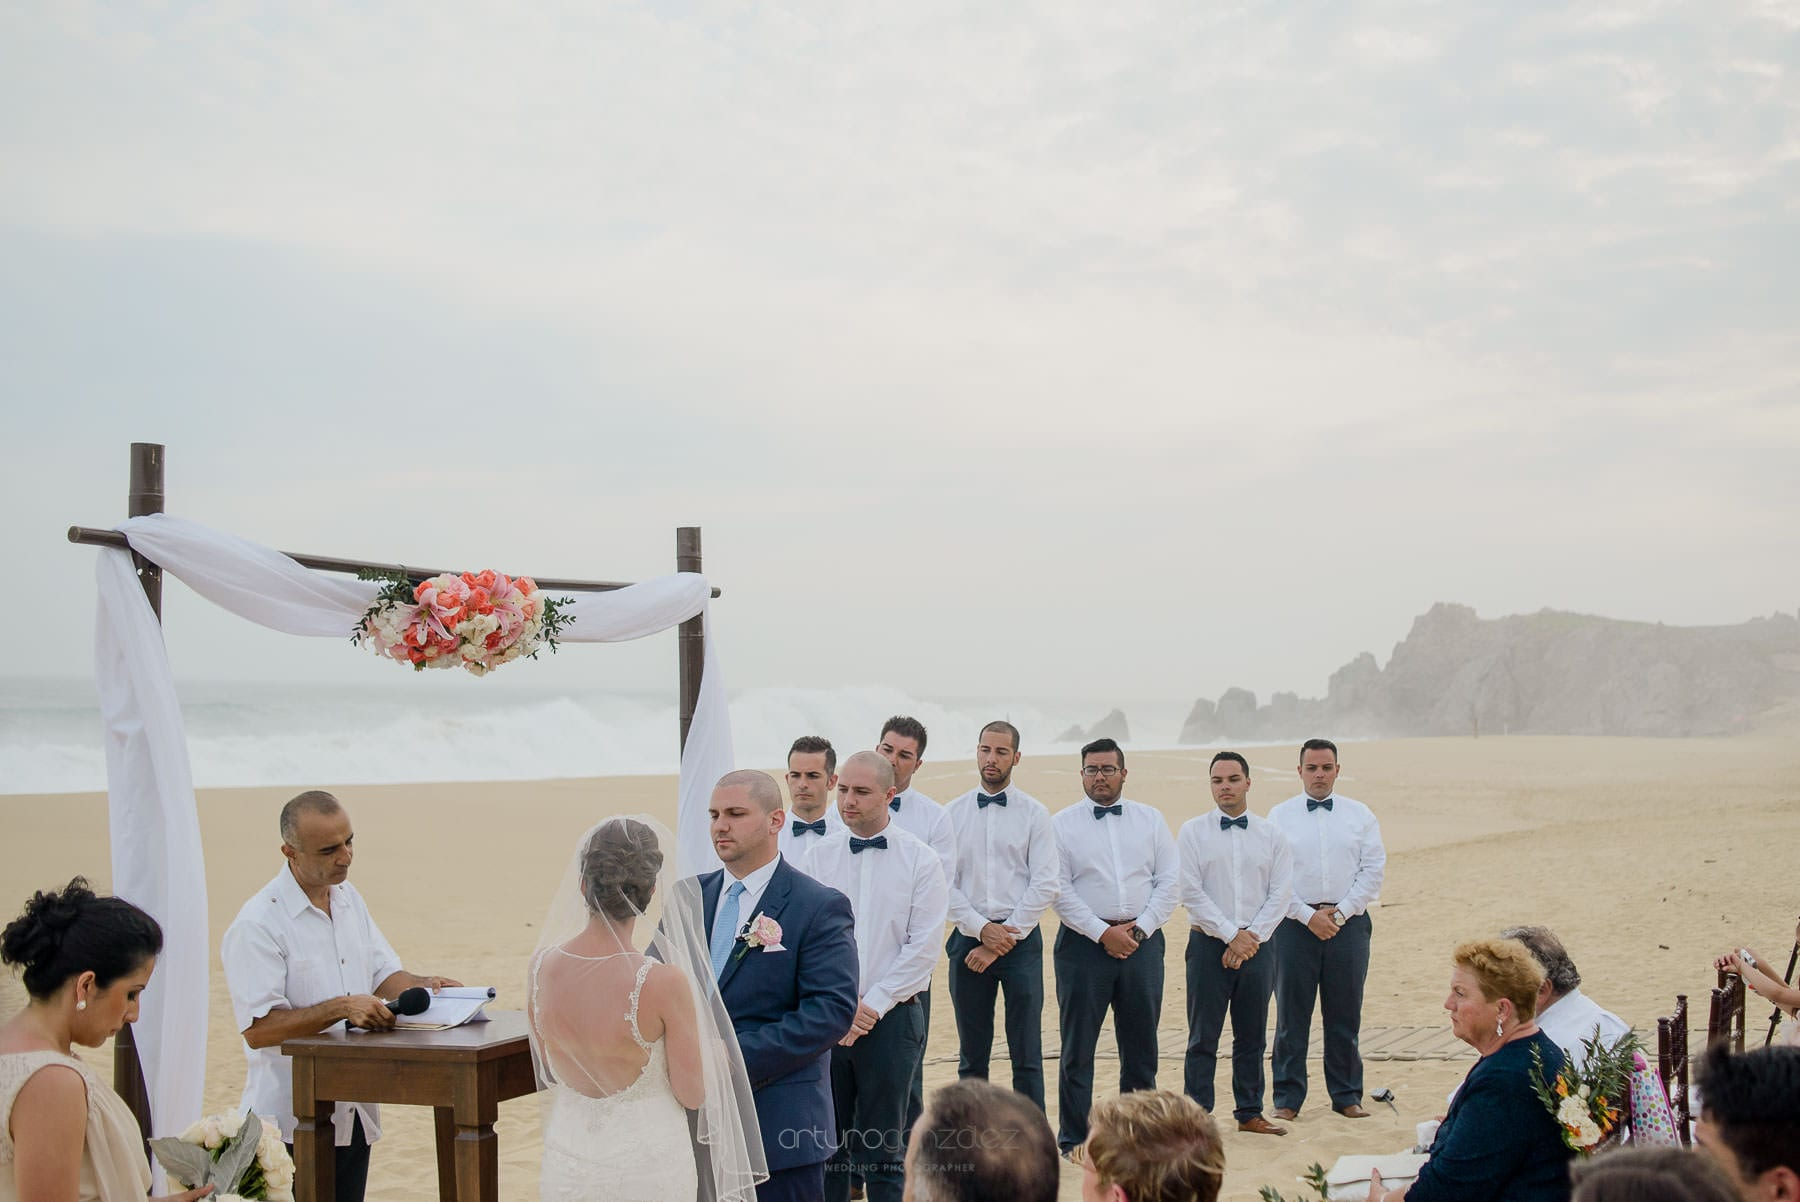 wedding-photos-pueblo-bonito-sunset-beach-4610